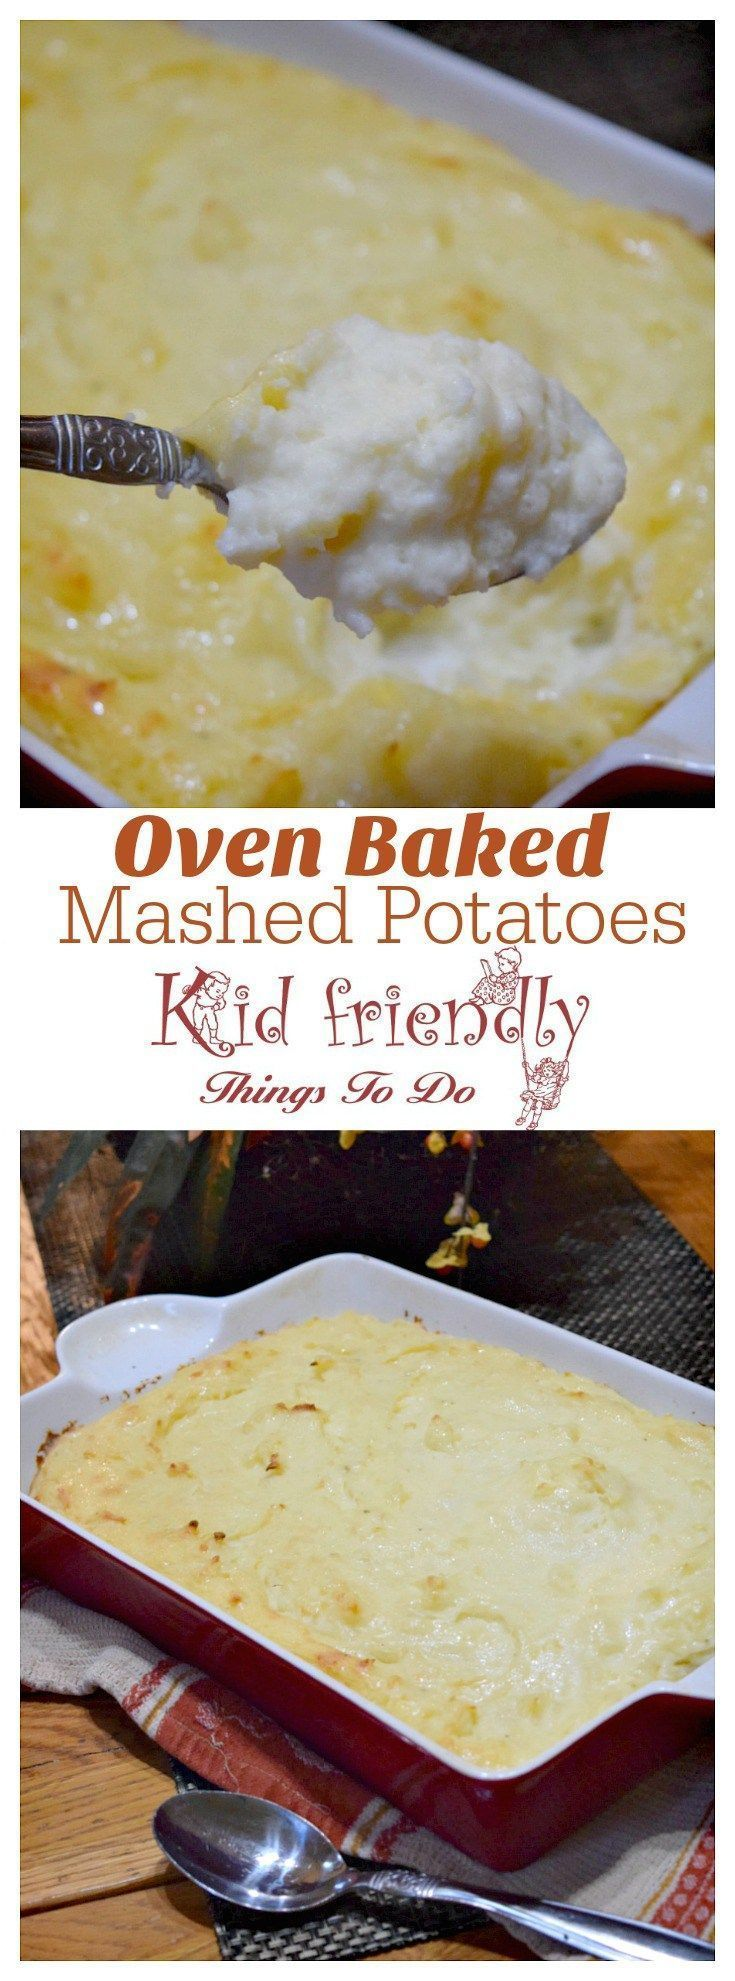 Make ahead oven baked mashed potatoes. Perfect side for busy holiday dinners! http://www.kidfriendlythingstodo.com